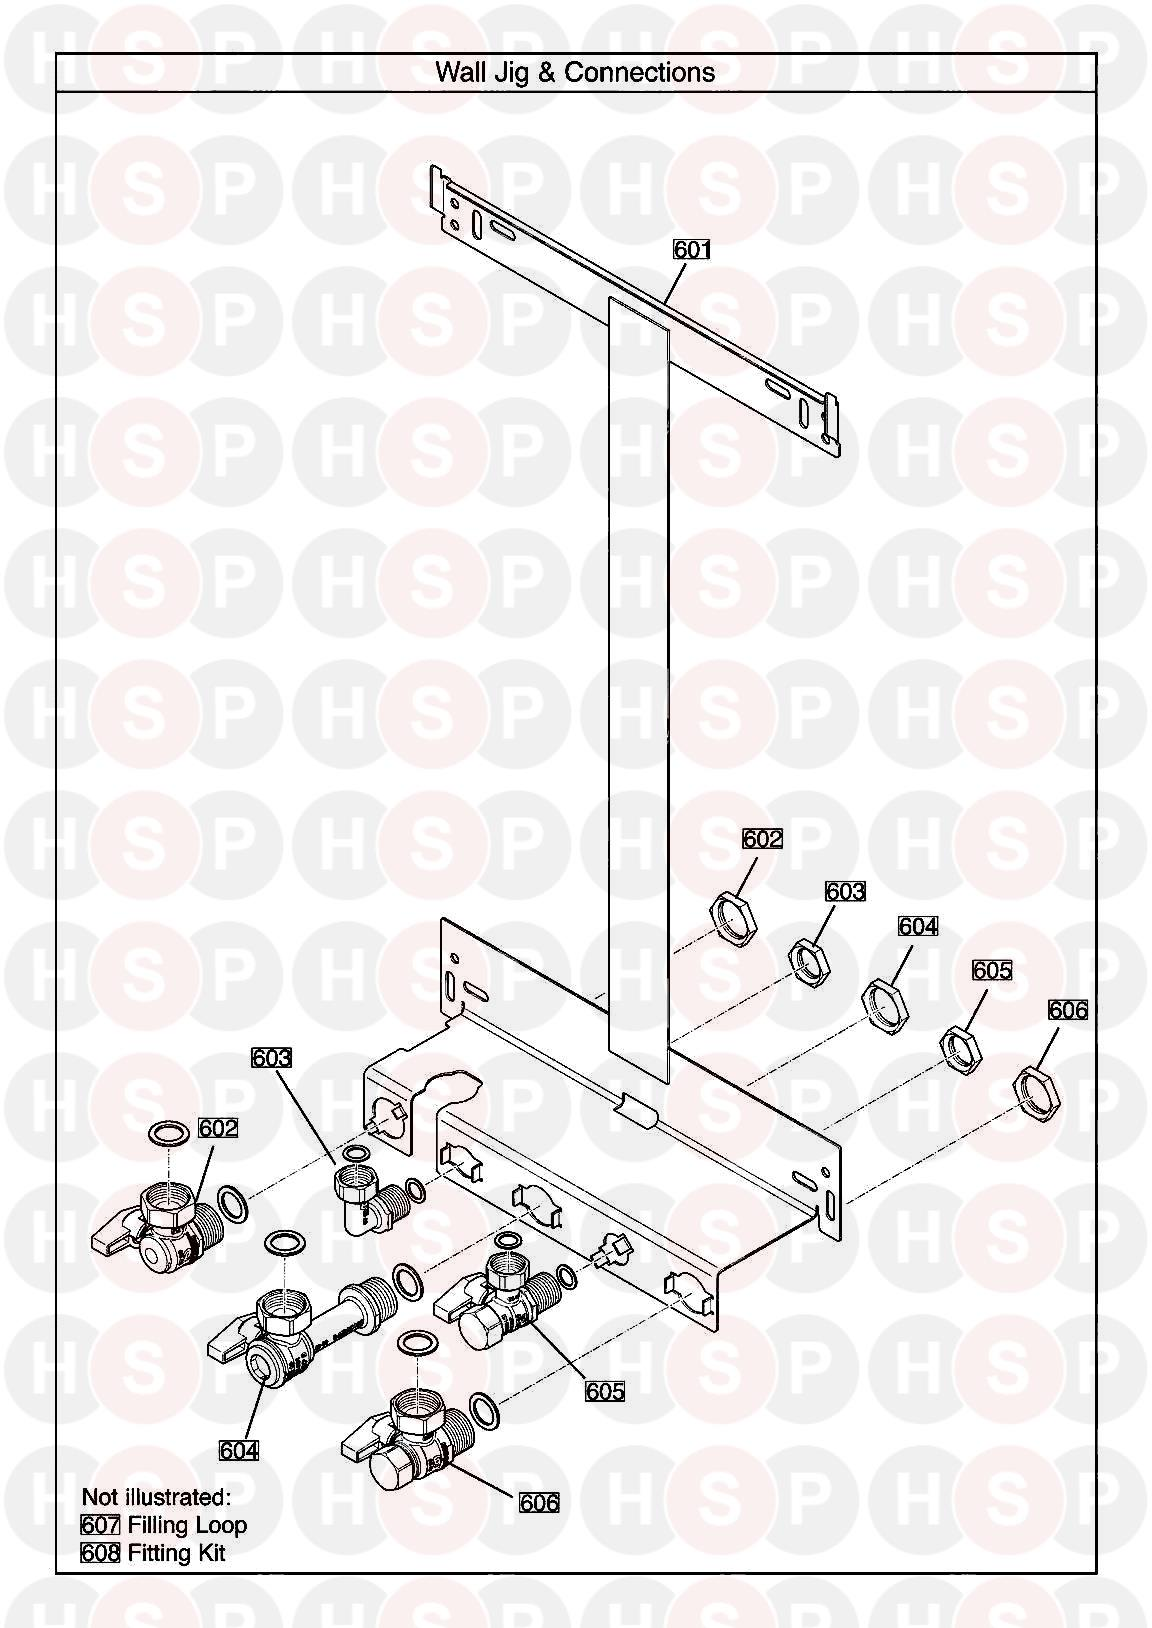 Baxi Neta Tec 28 Ga Wall Jig Diagram Heating Spare Parts